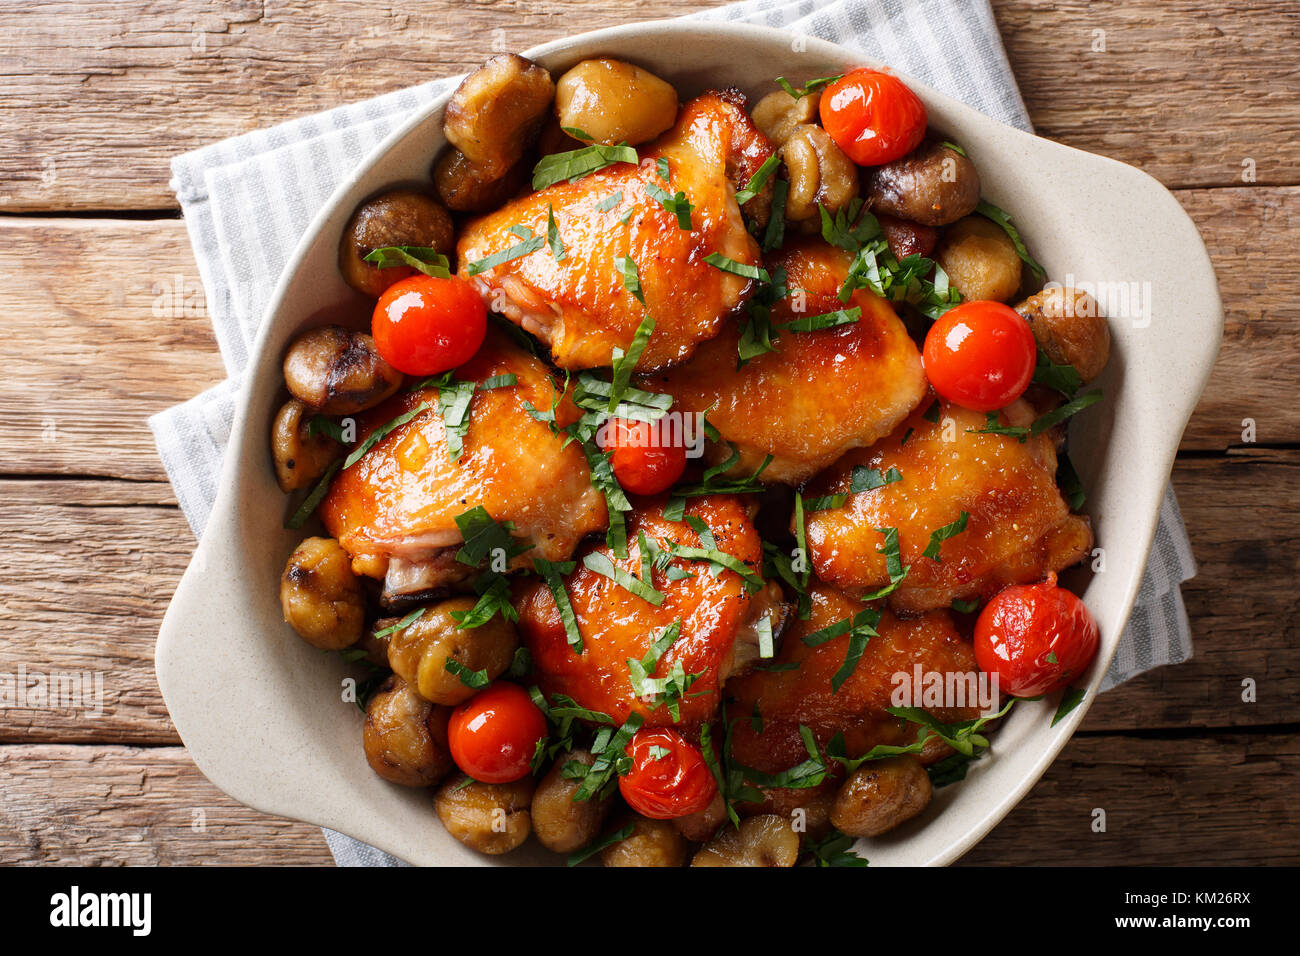 Fried chicken with chestnuts, greens and tomatoes close-up in a bowl on the table. horizontal top view from above - Stock Image